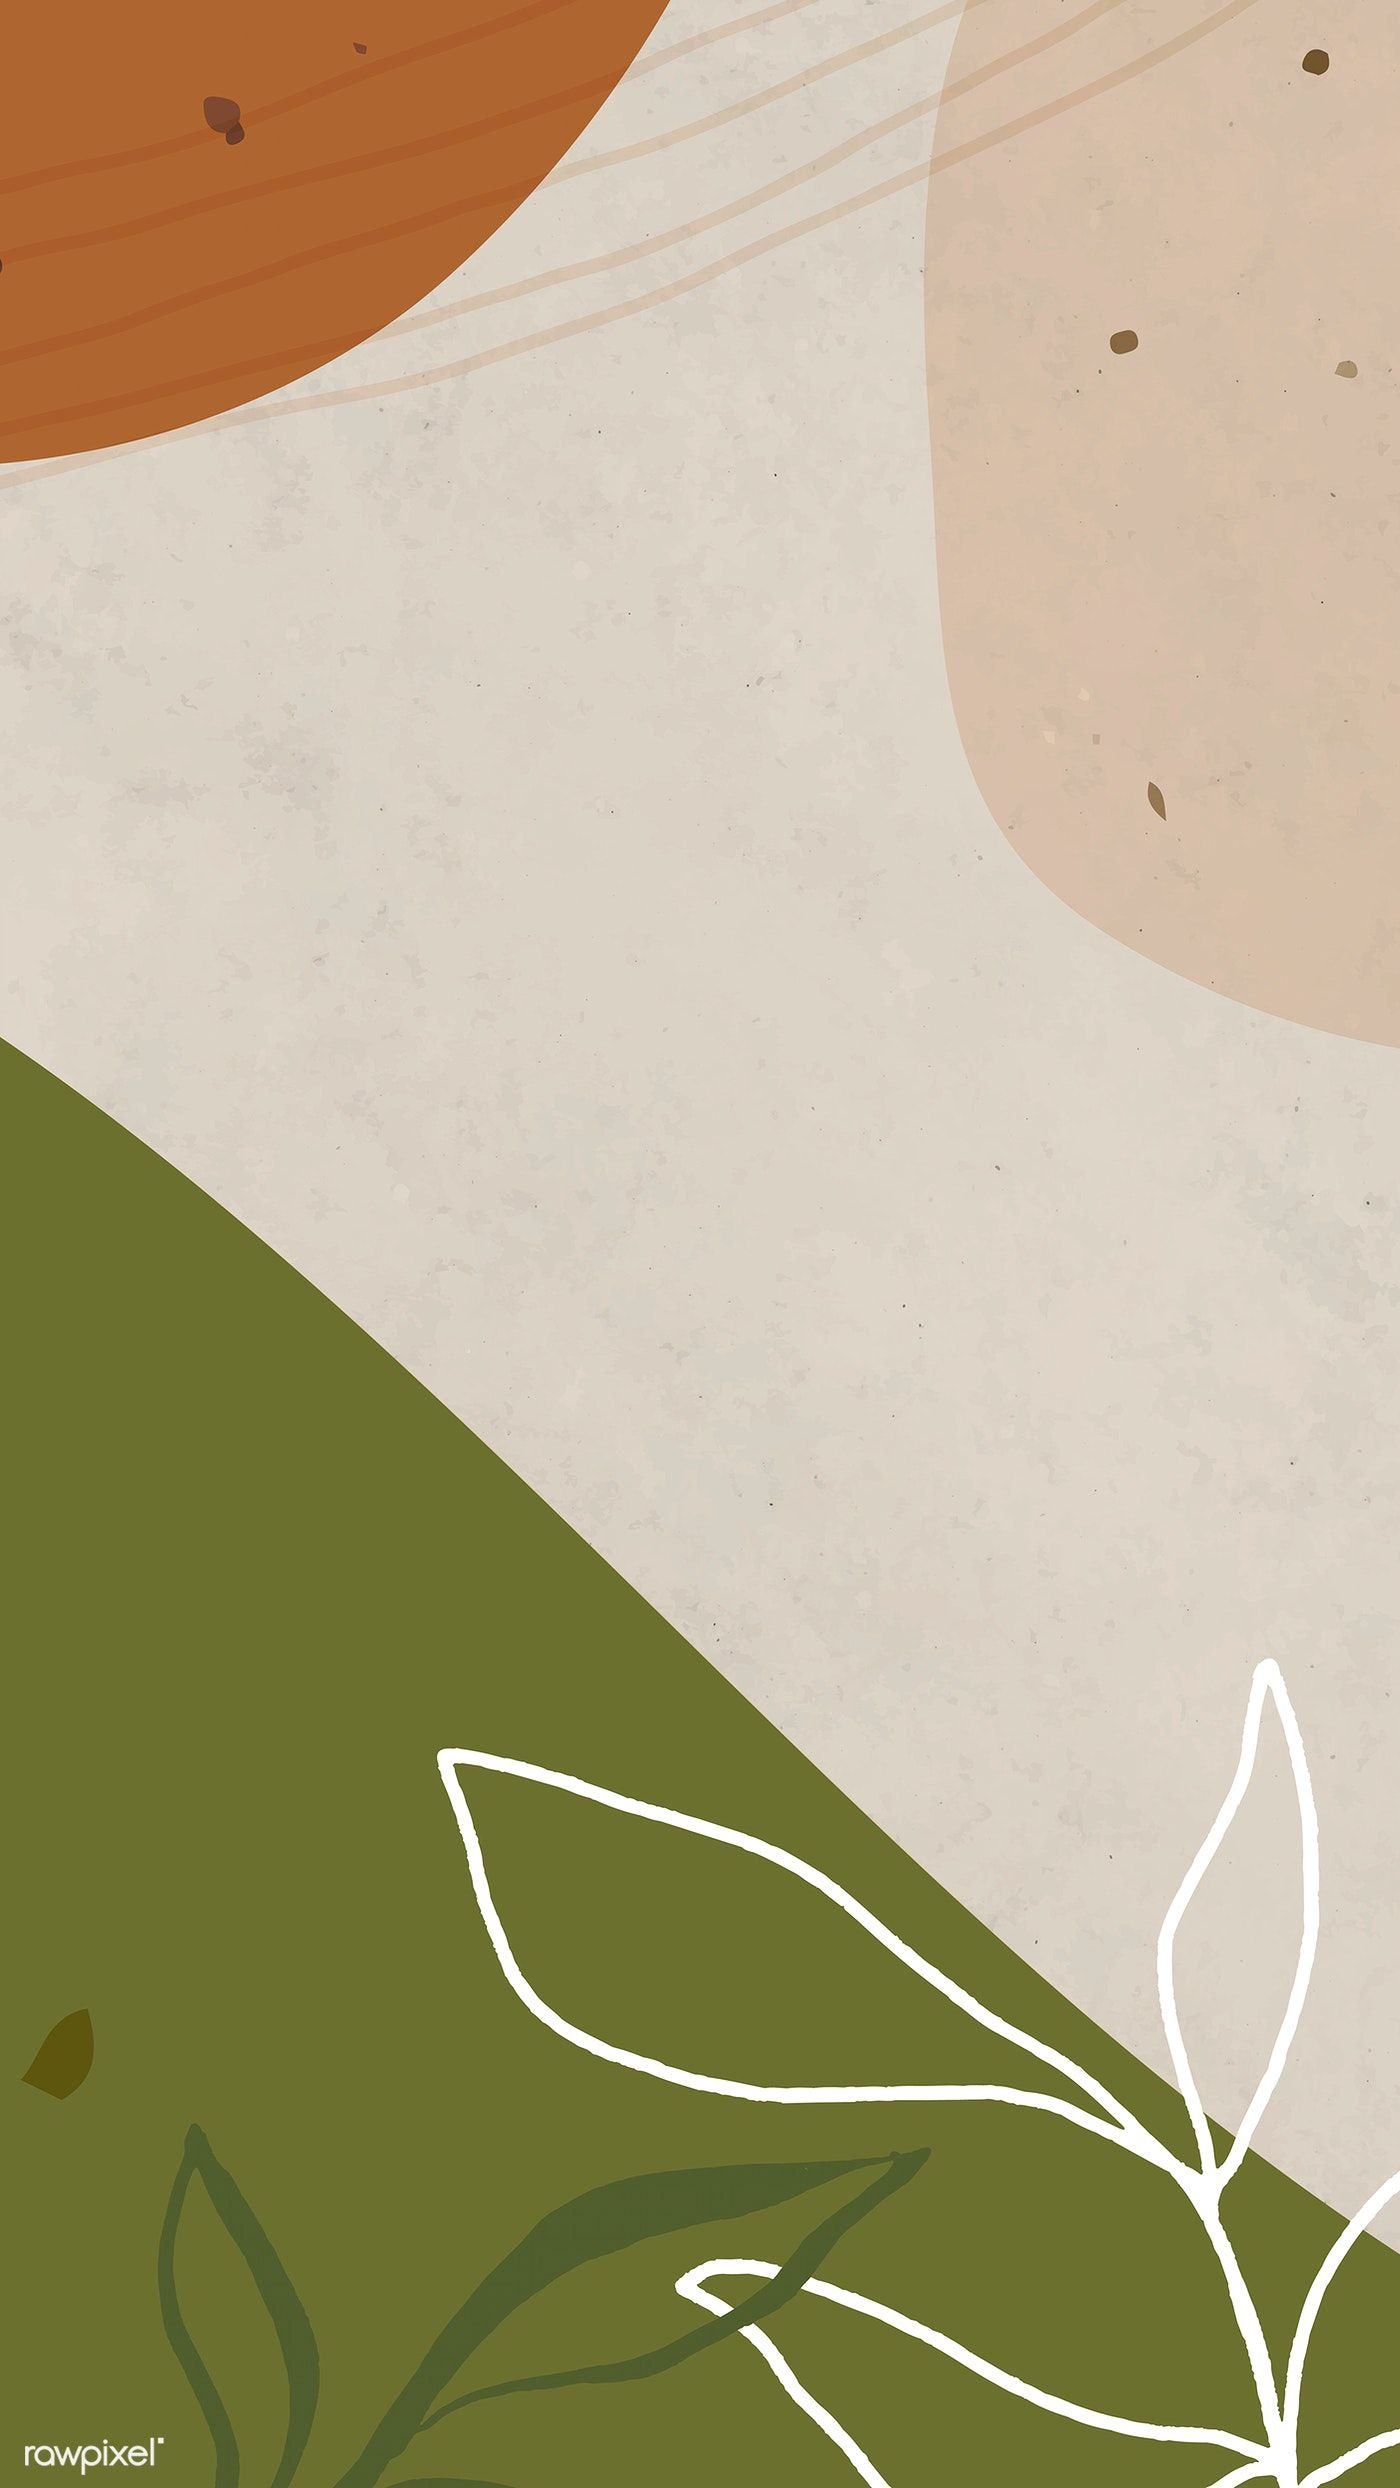 Download premium illustration of Abstract earth tone